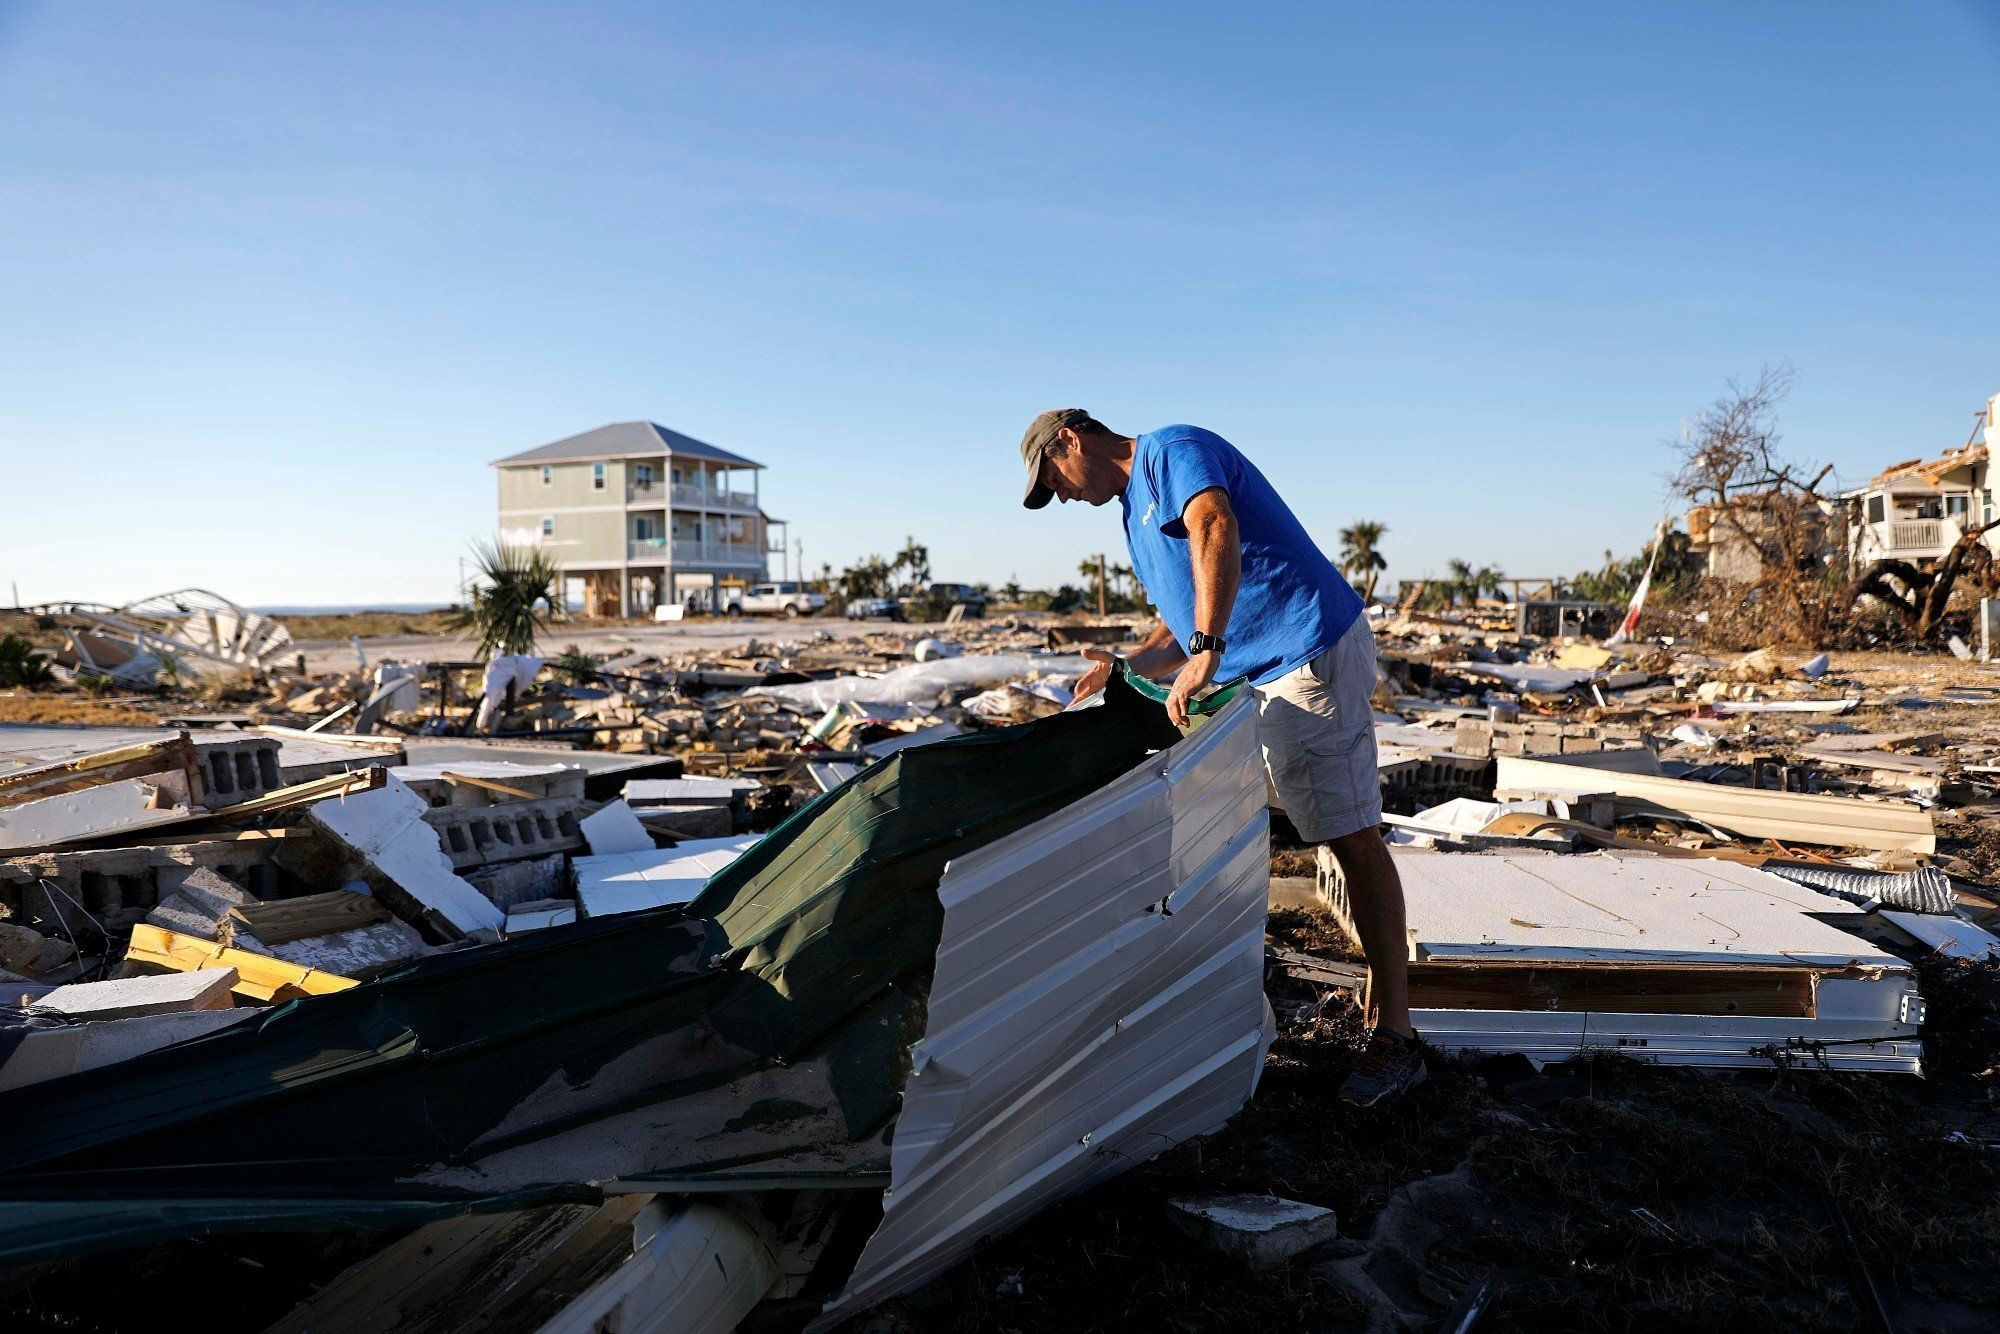 Mike Jackson sifts through debris looking for remnants of his home which was destroyed by hurricane Michael in Mexico Beach, Fla., Saturday, Oct. 13, 2018.